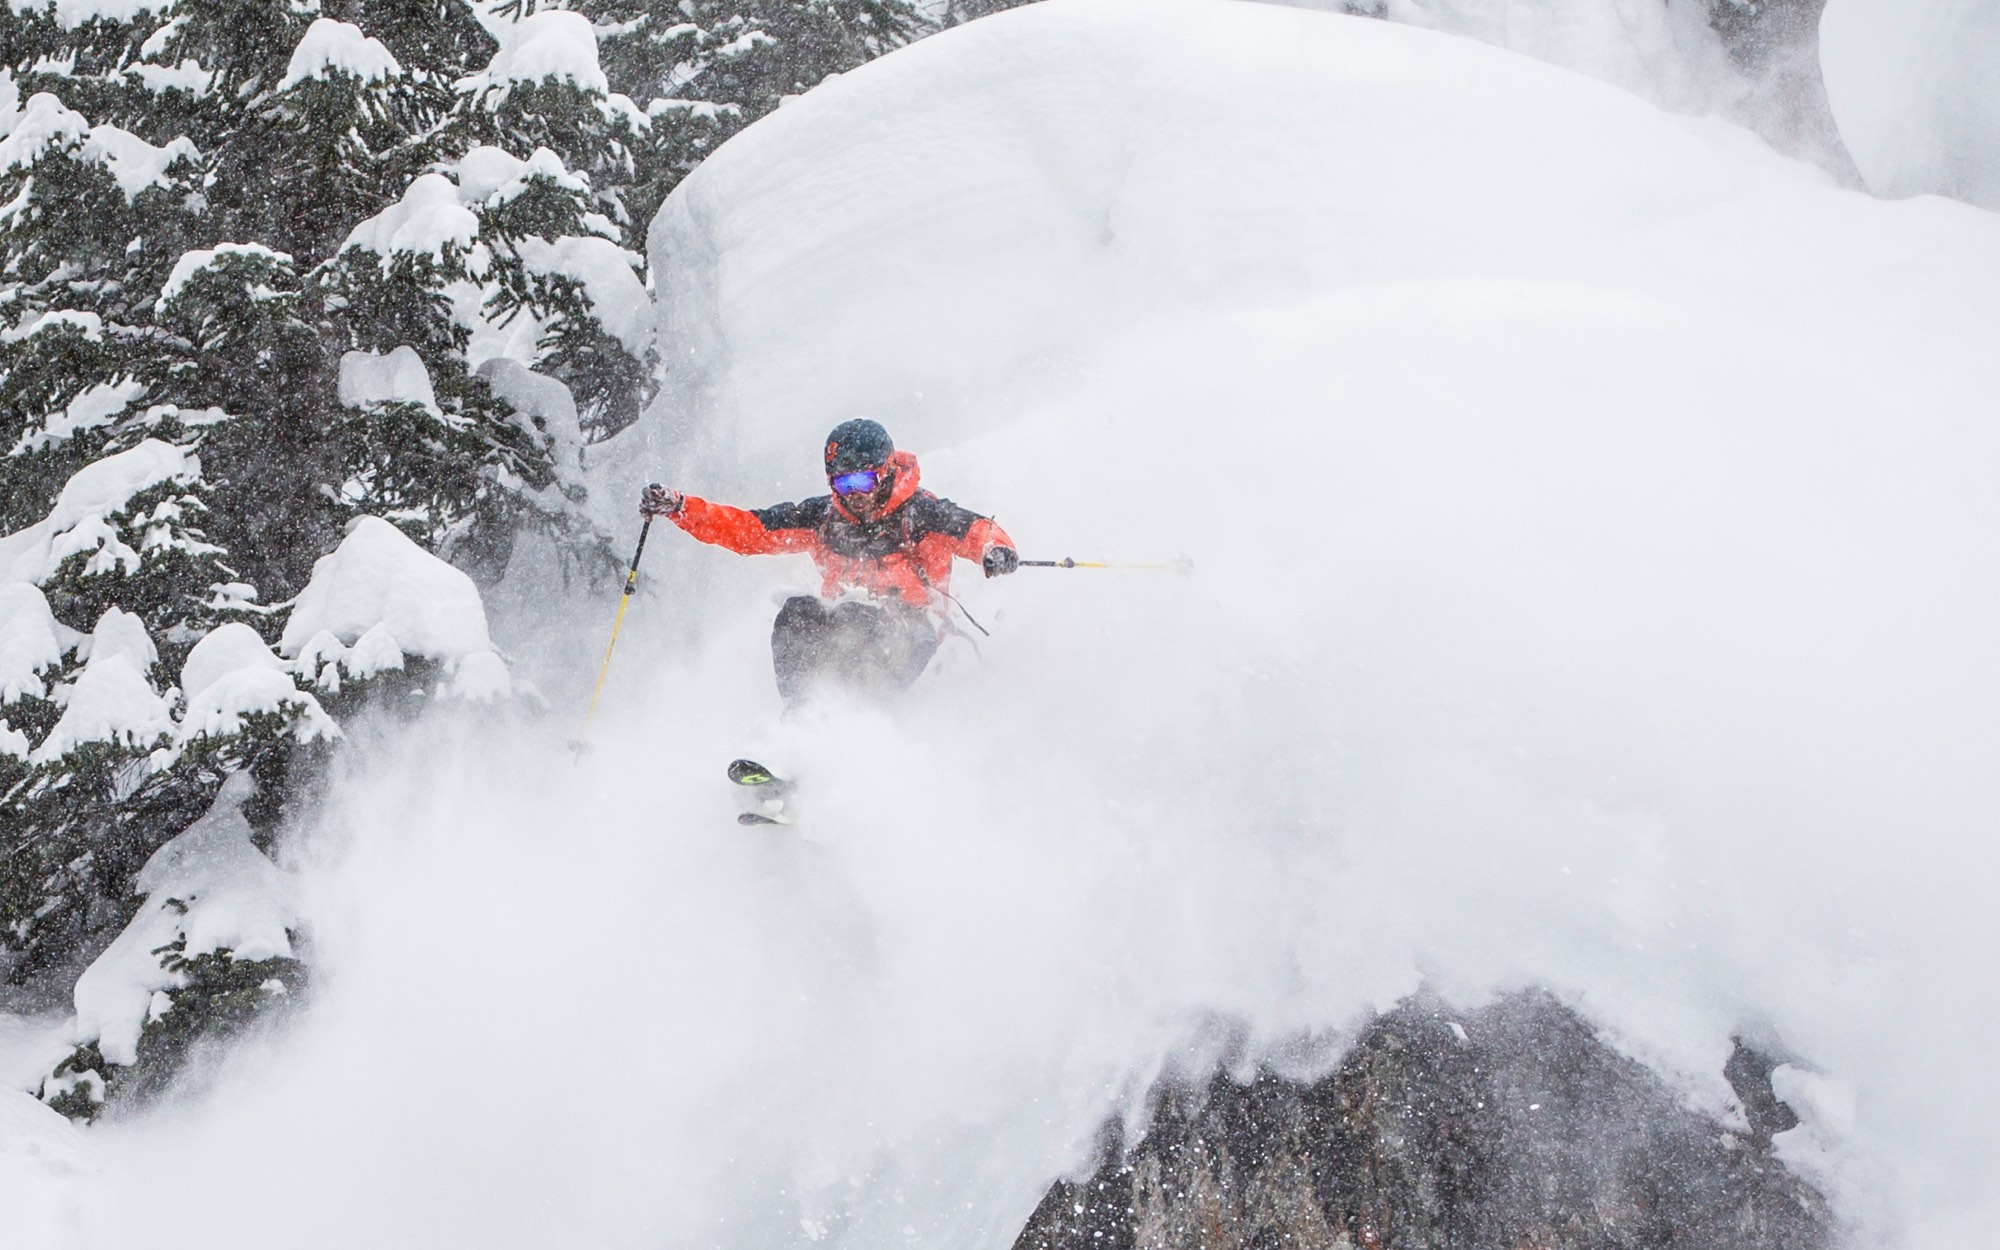 freeride man in deep pow